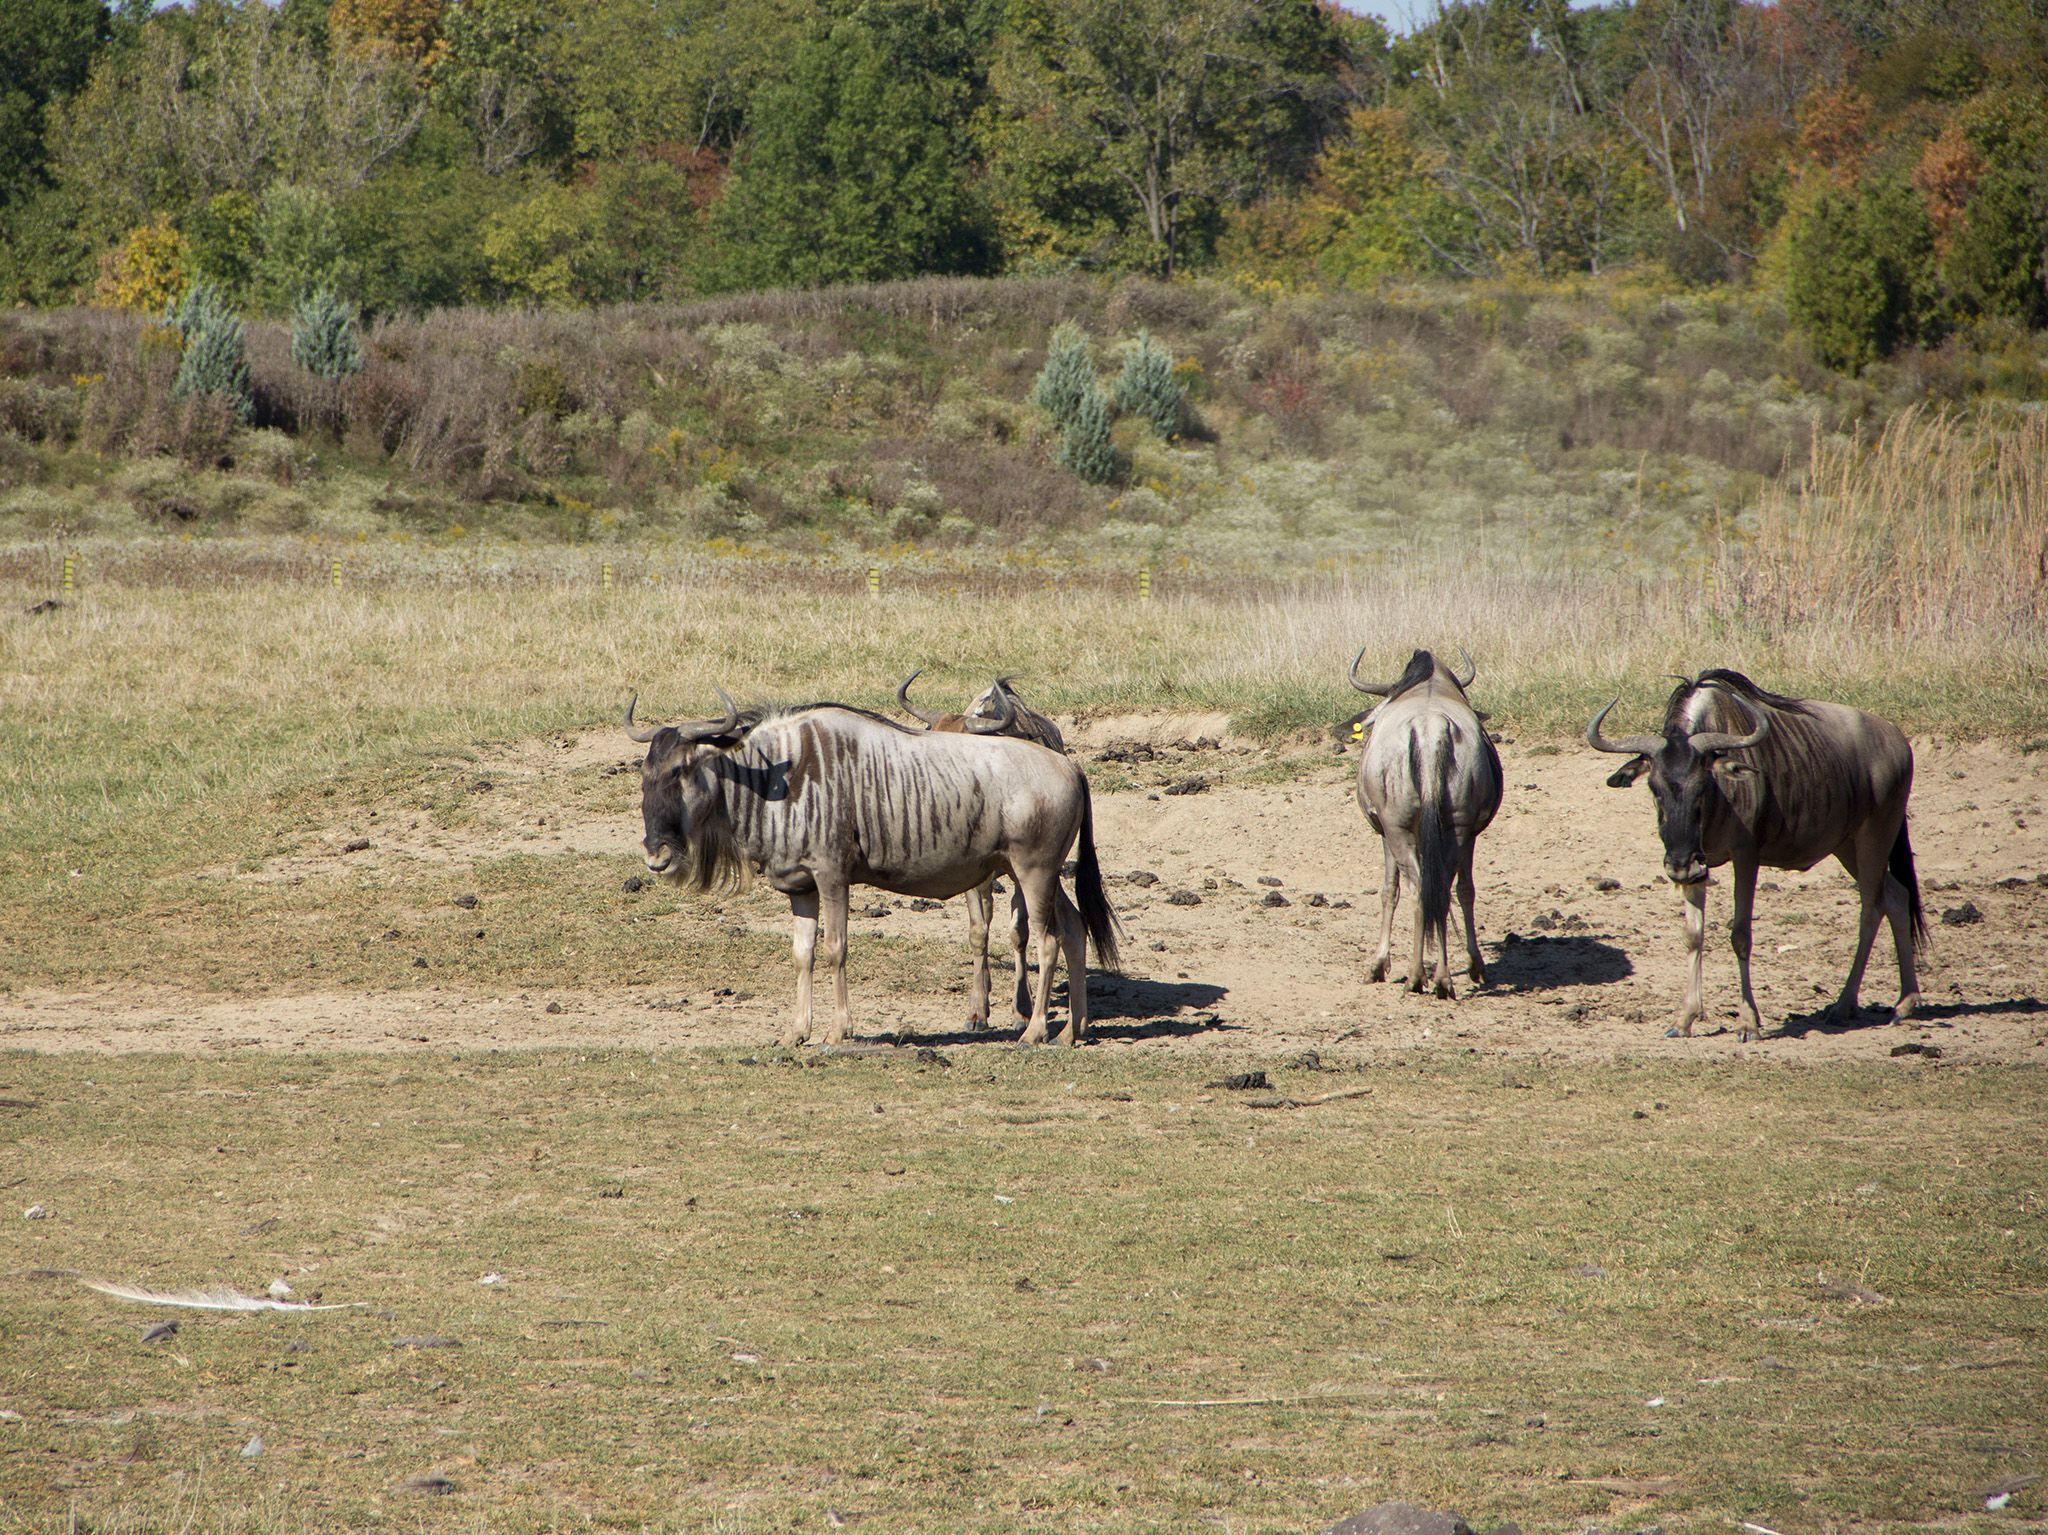 Powell, OH - Wildebeest at the Columbus Zoo's Heart of Africa exhibit. This is part of Secrets... [Photo of the day - June 2021]